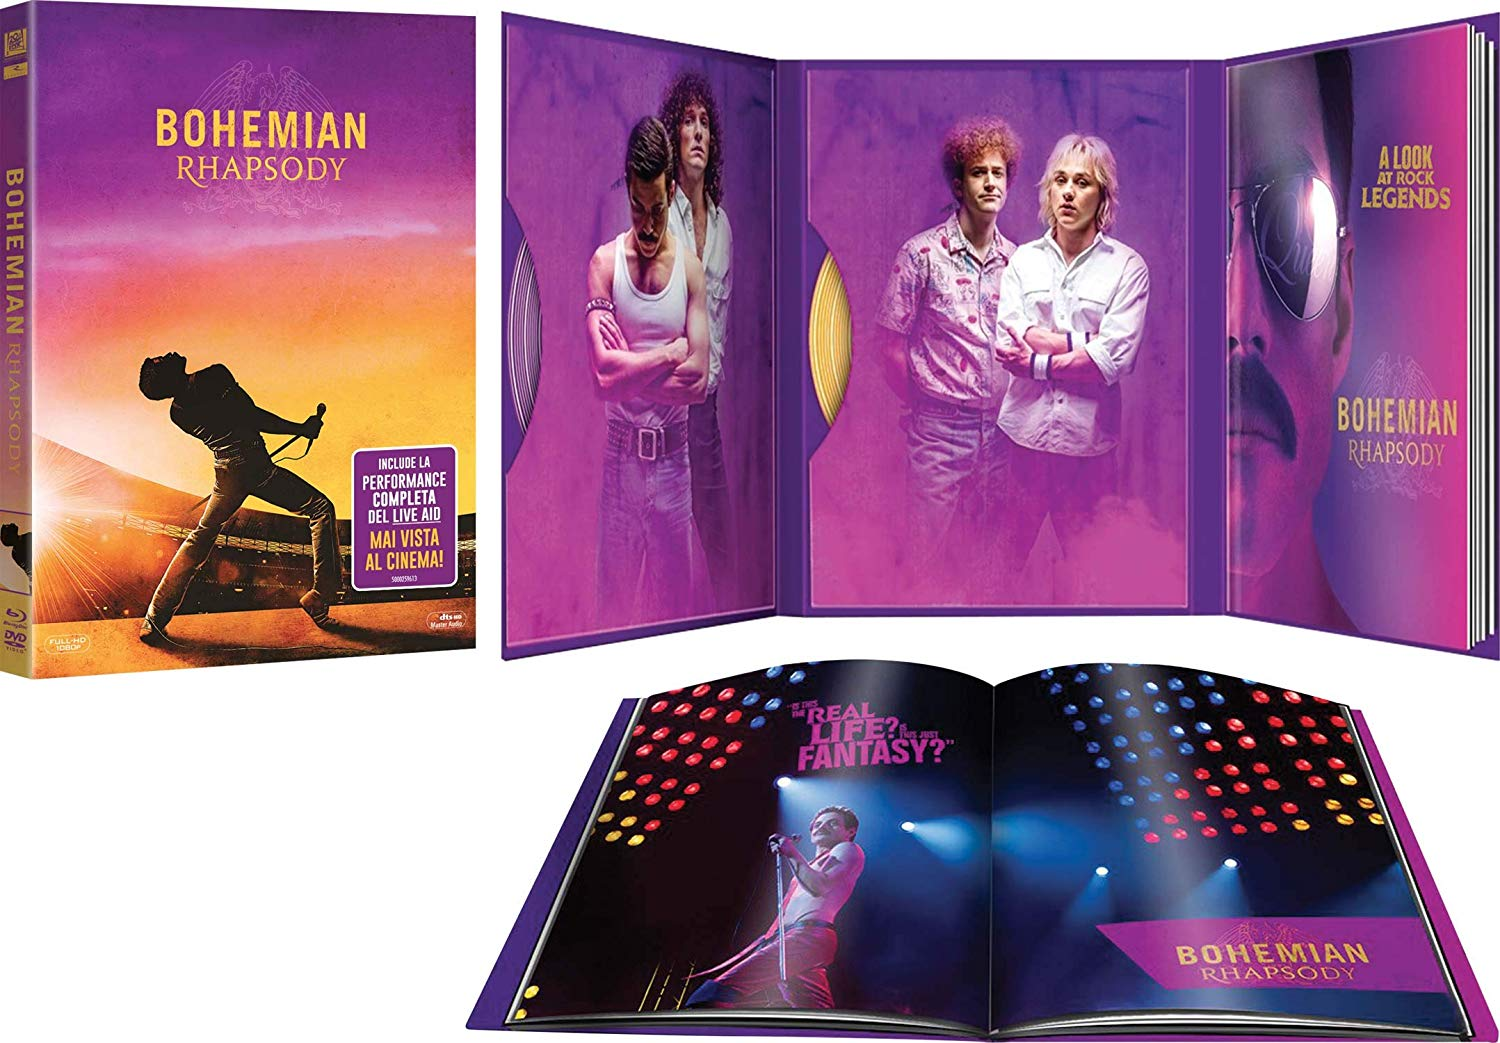 BOHEMIAN RHAPSODY (LTD) (DIGIBOOK) (BLU-RAY)